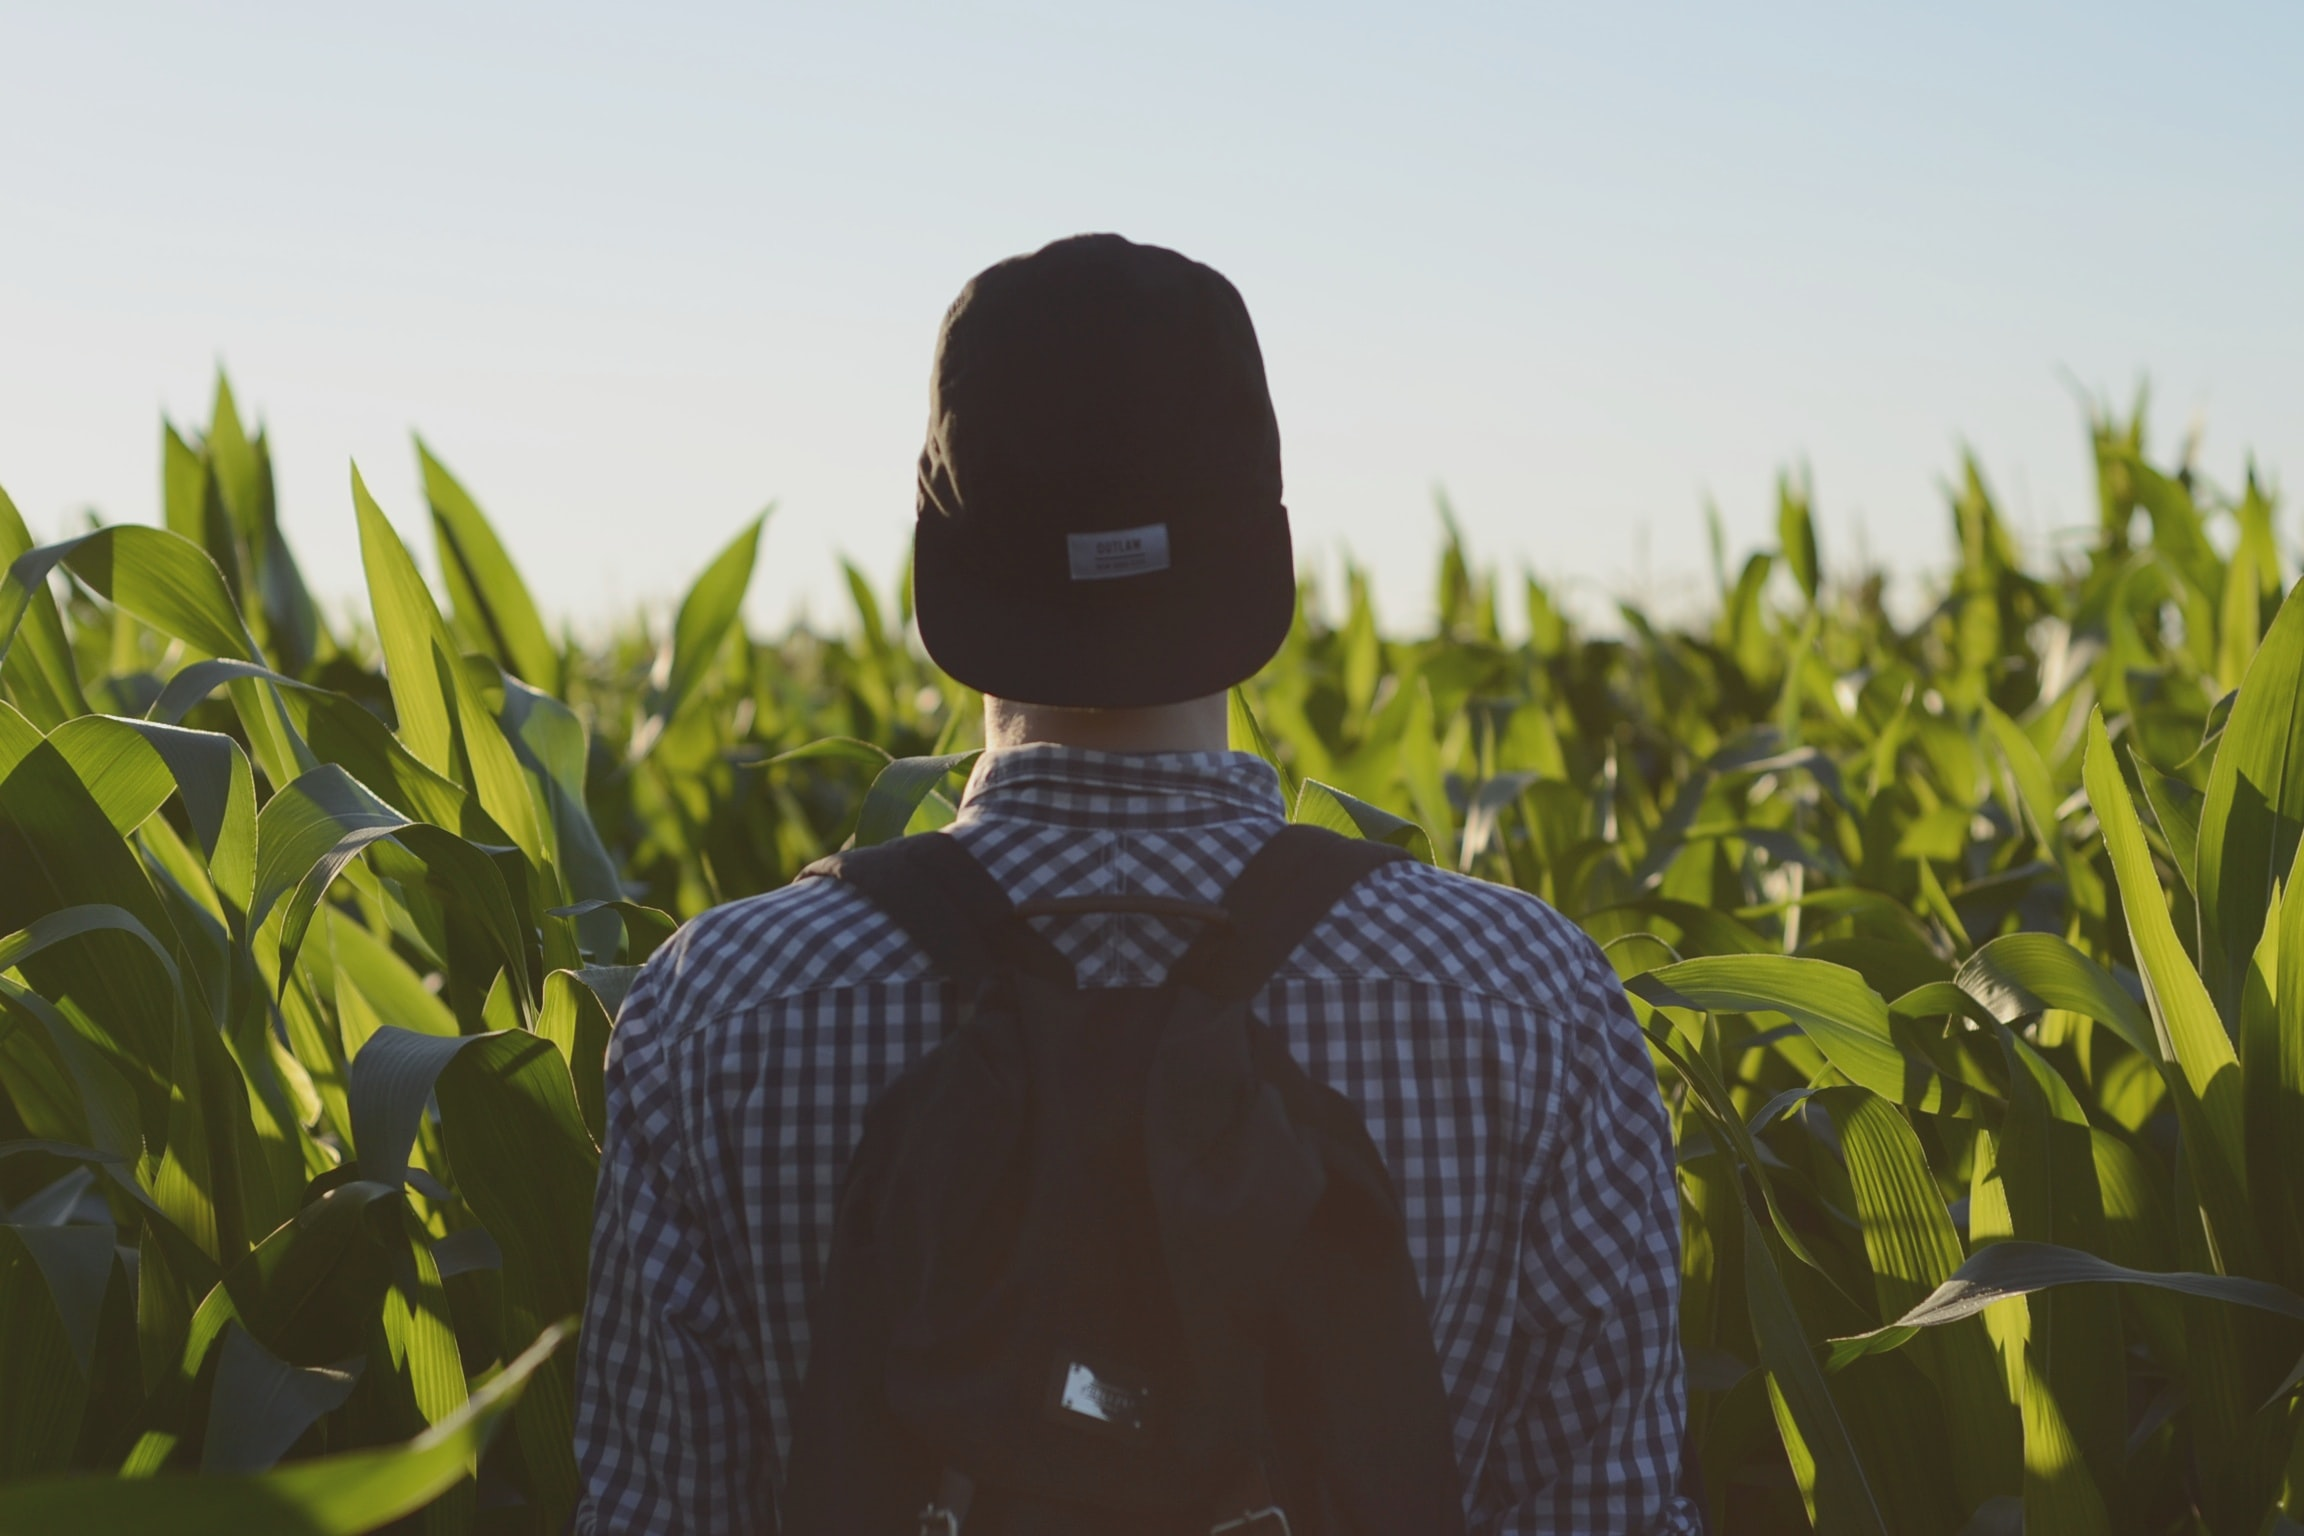 A man wearing a backward hat, flannel, and backpack standing in a field of corn